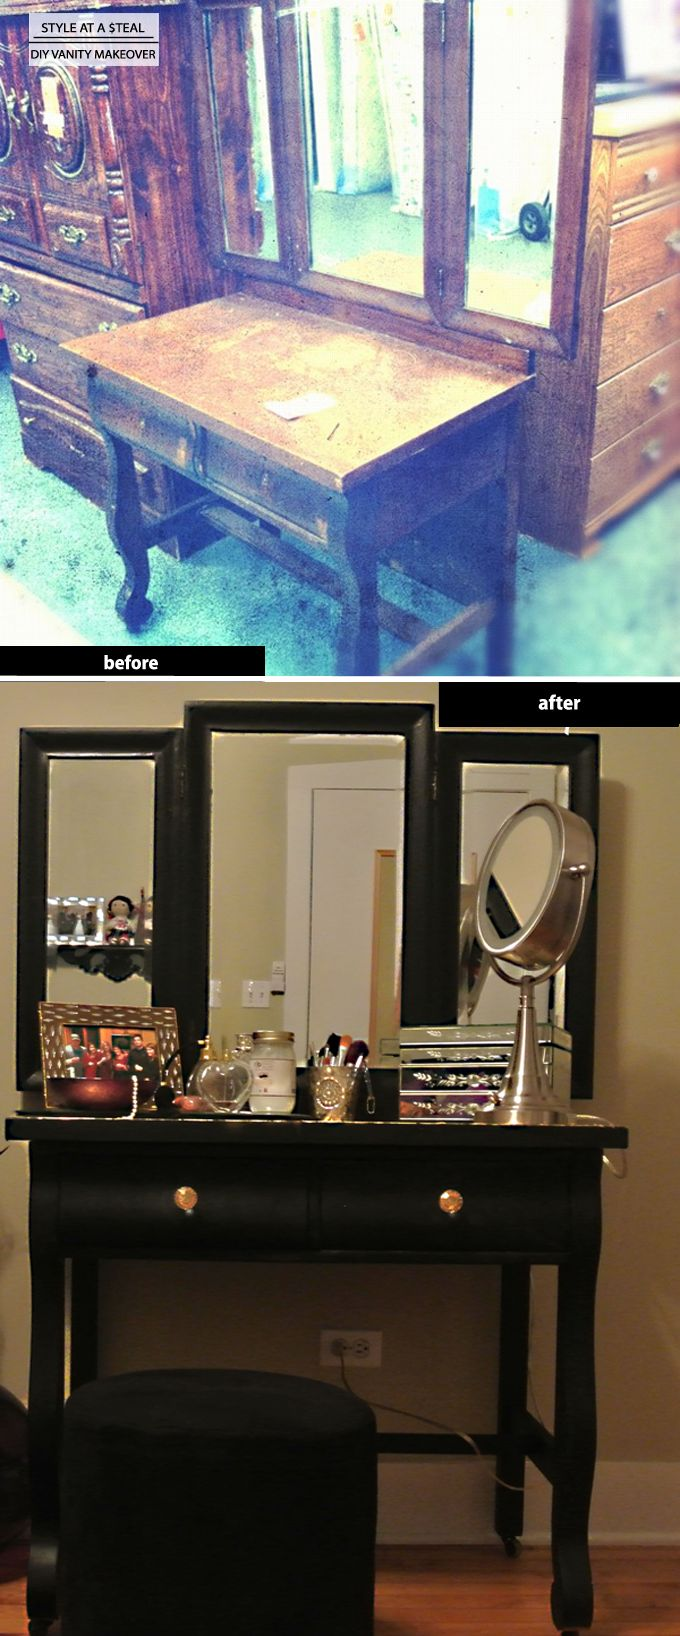 DIY Vanity Makeover Hubby would probably kill me because diy means husband do it!